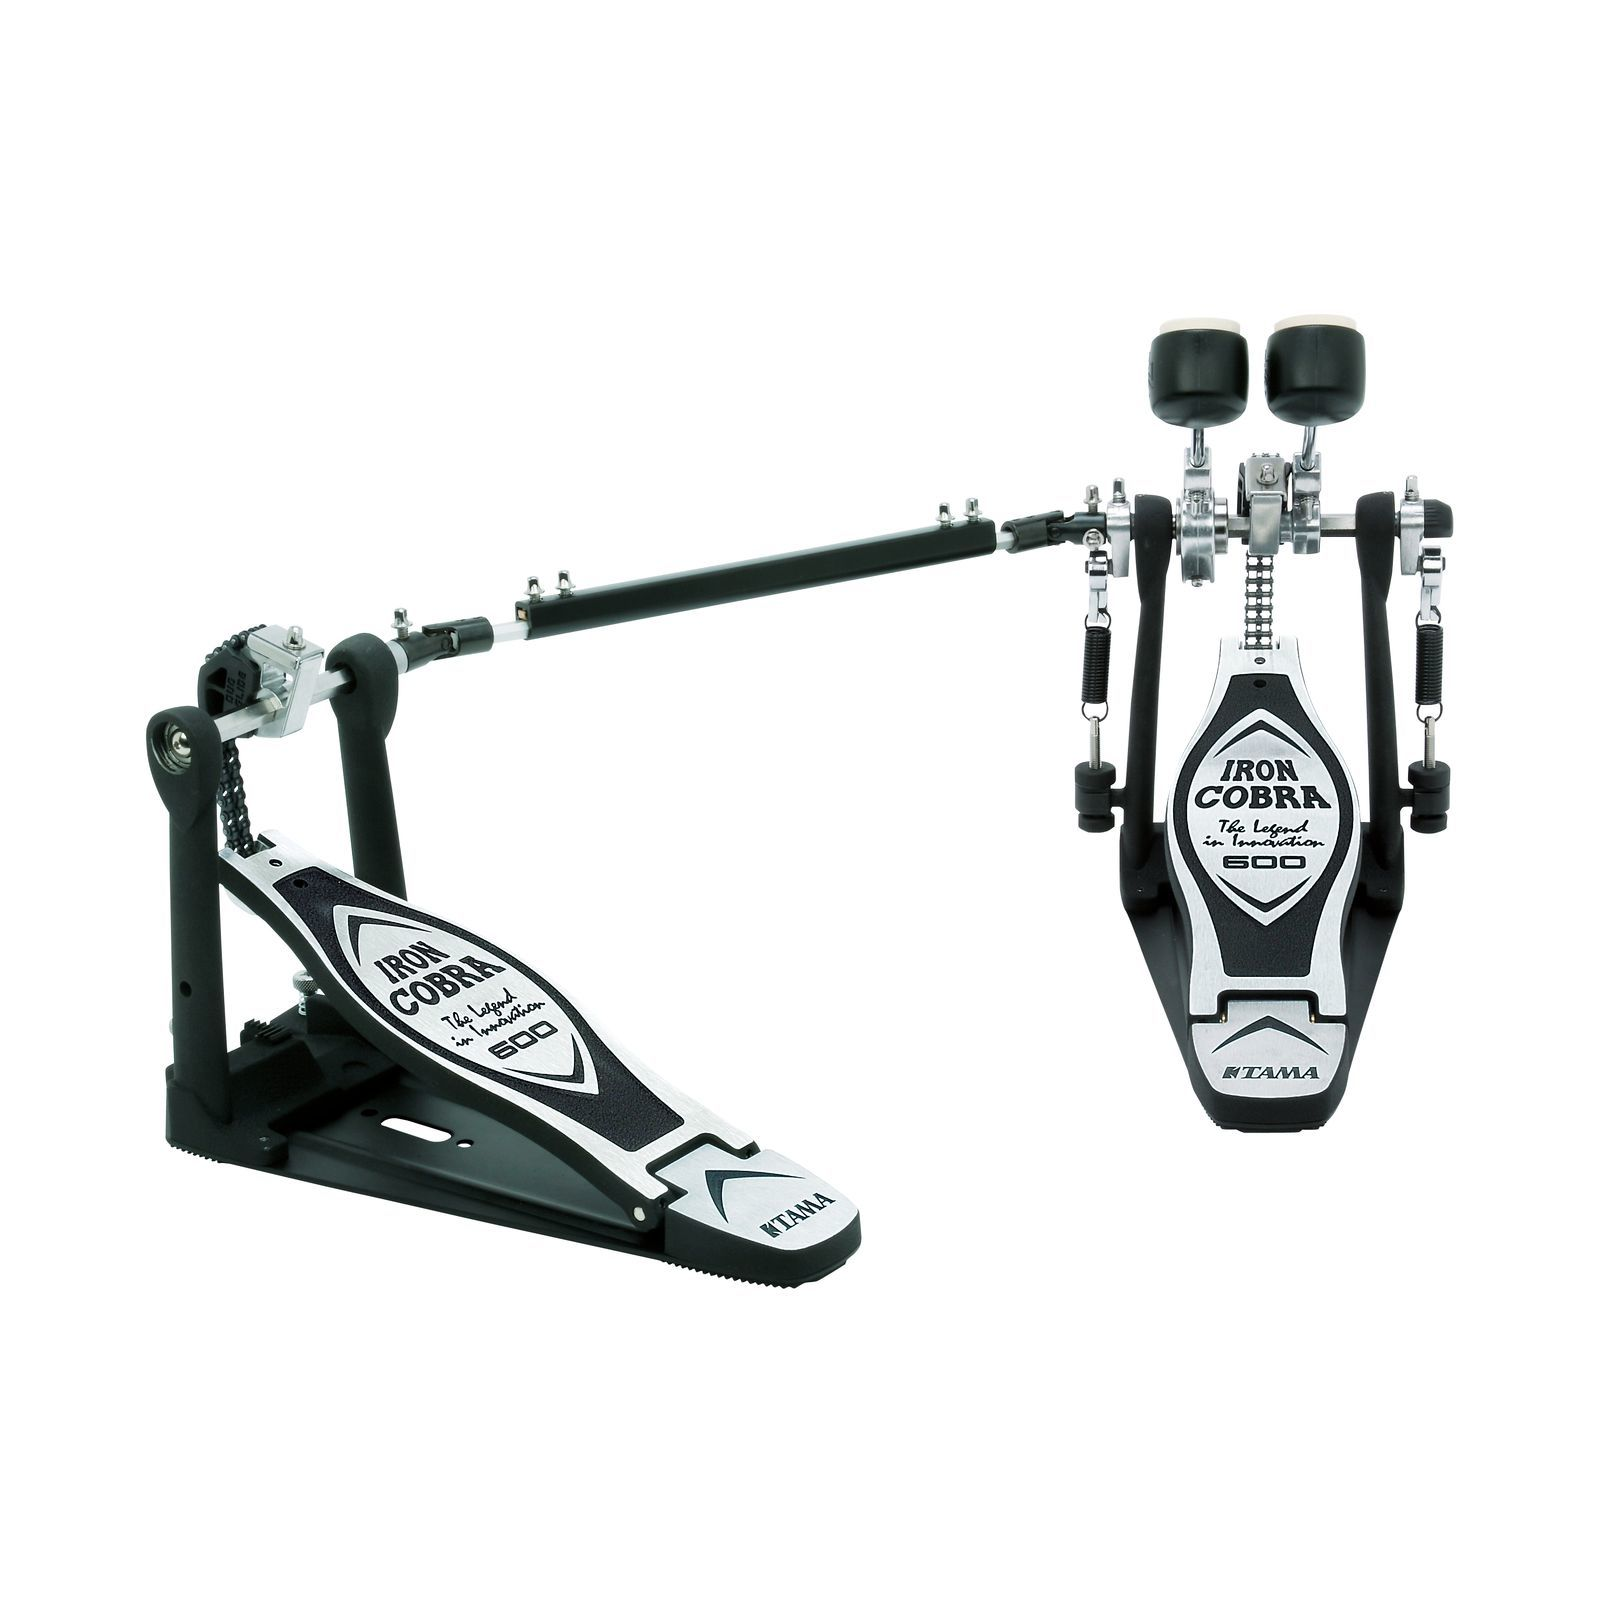 Tama Doppelpedal Iron Cobra, HP600DTW, Duo Glide Produktbild